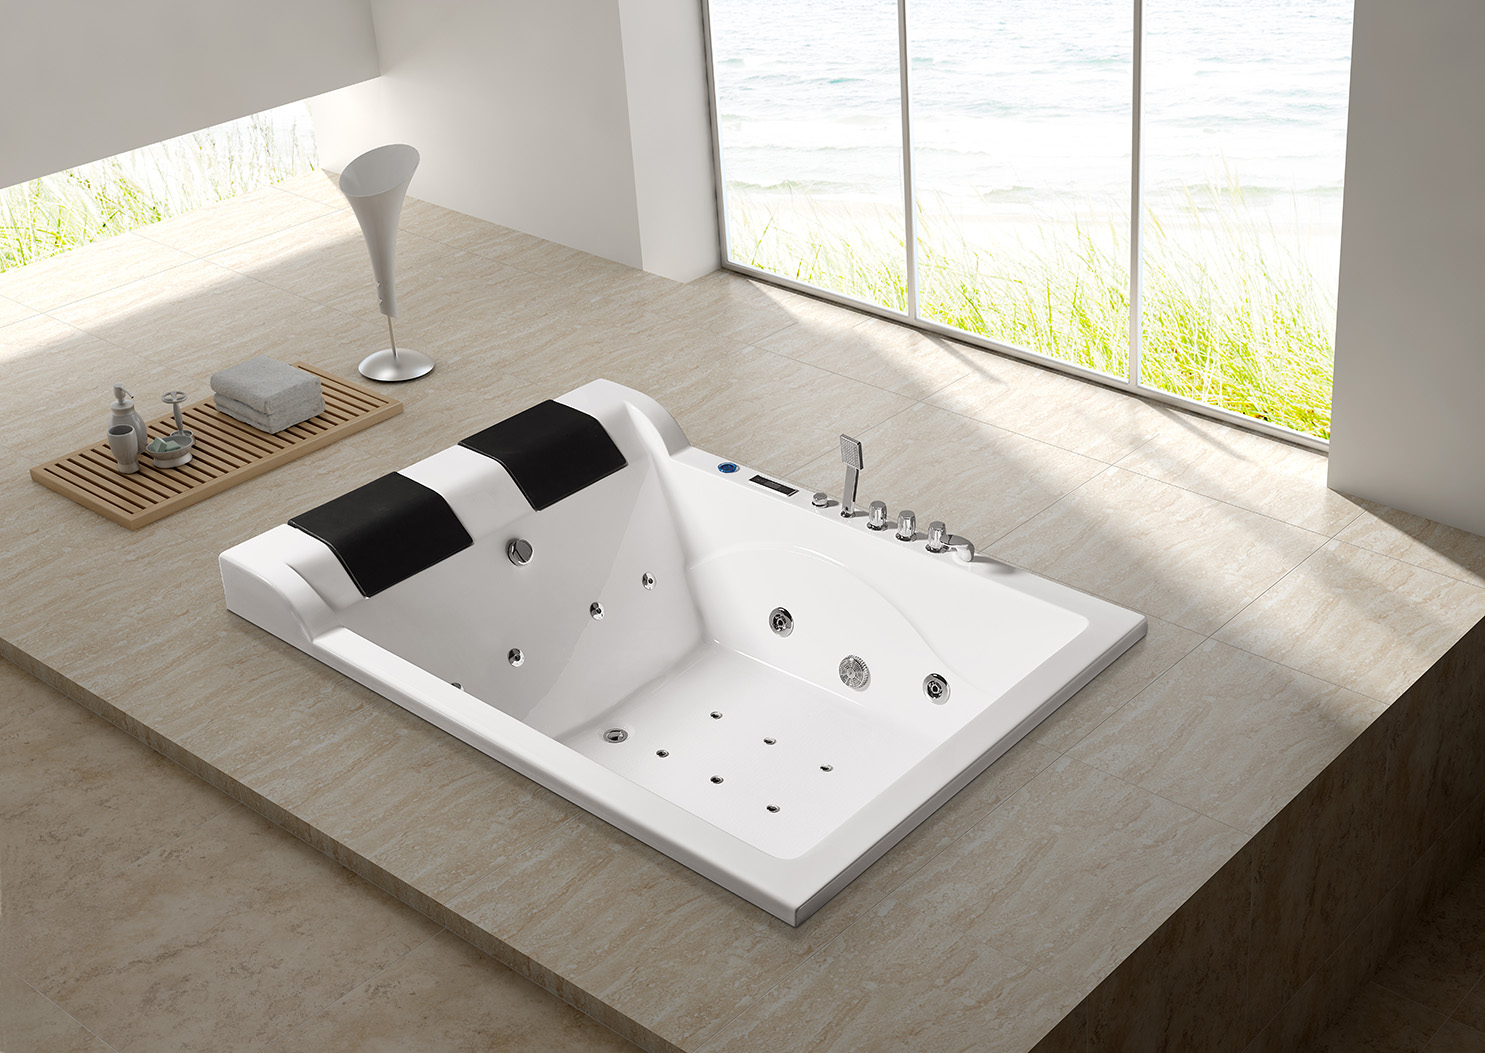 sanitary ware manufacturers from china -ovs